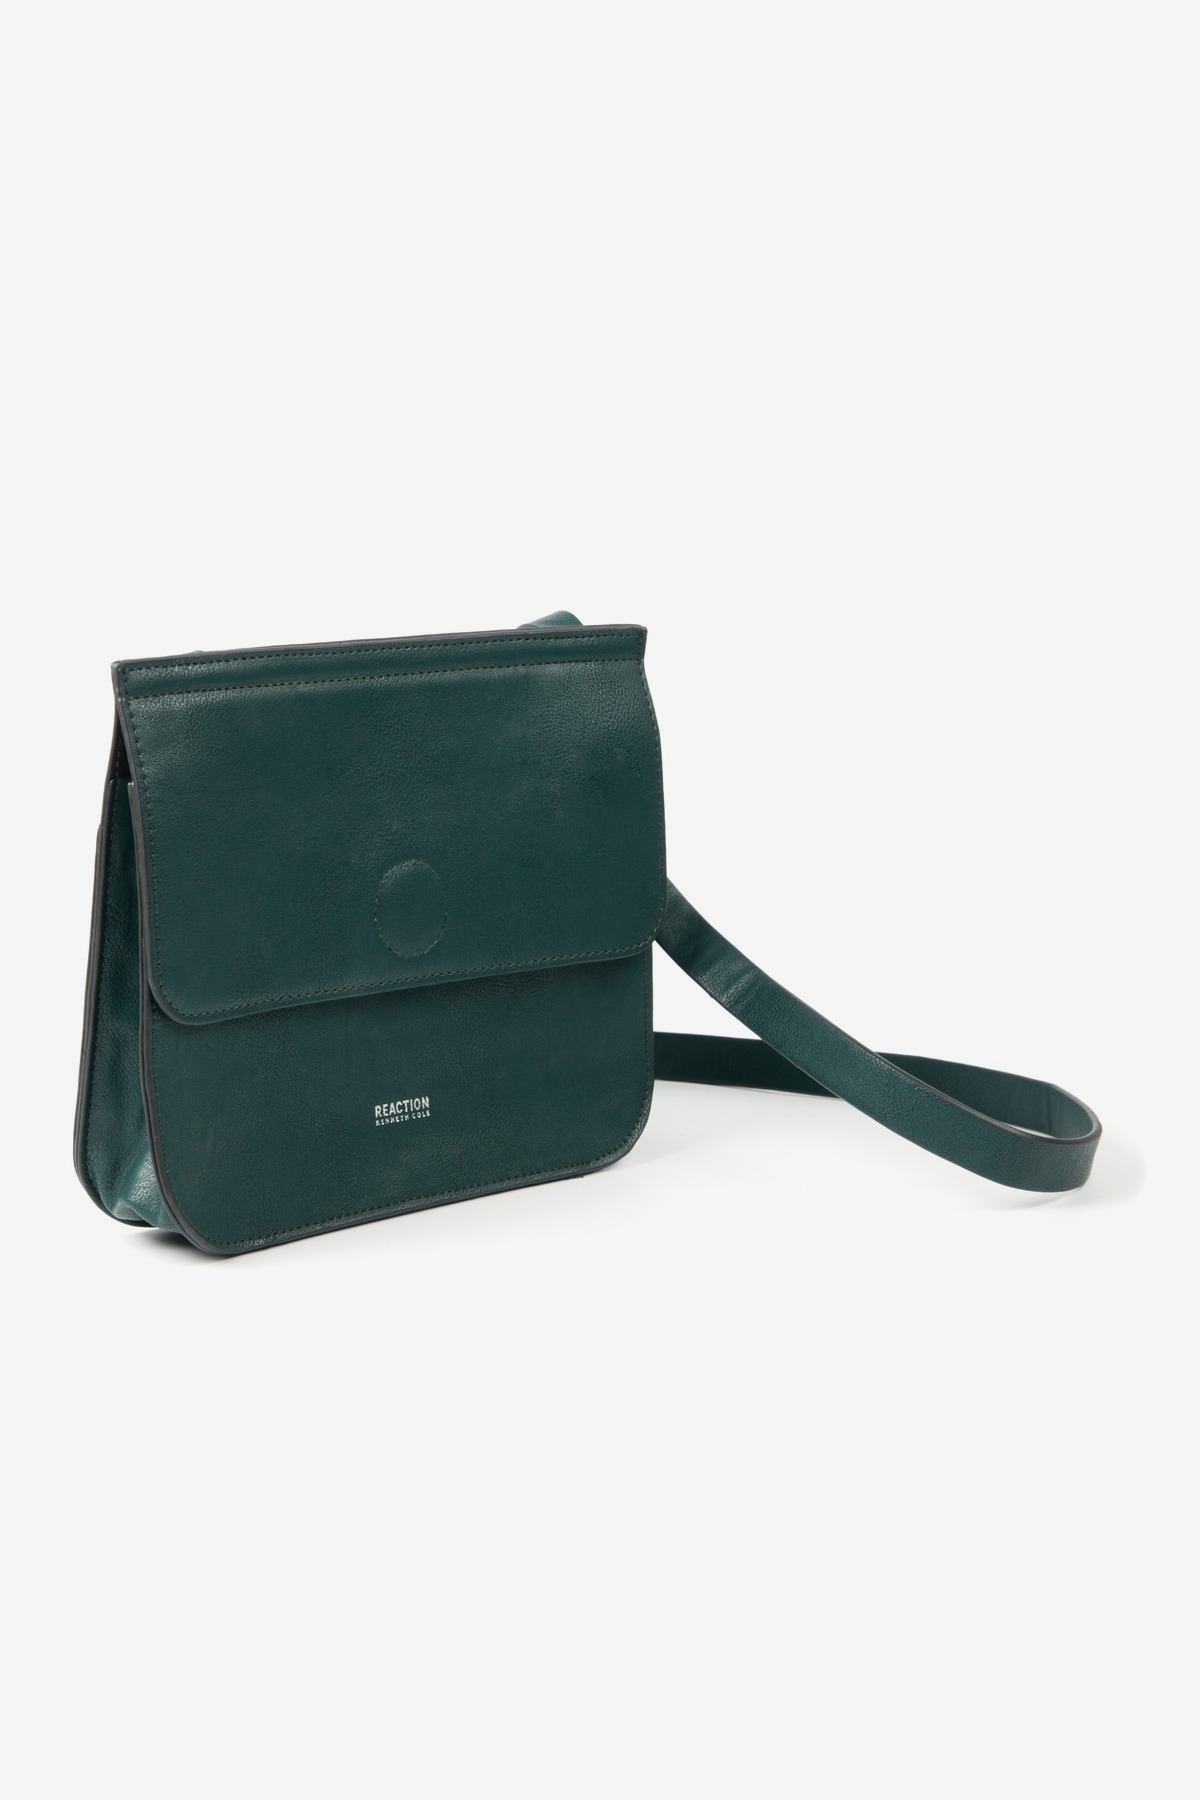 Hunter Foldover Bag by Kenneth Cole REACTION